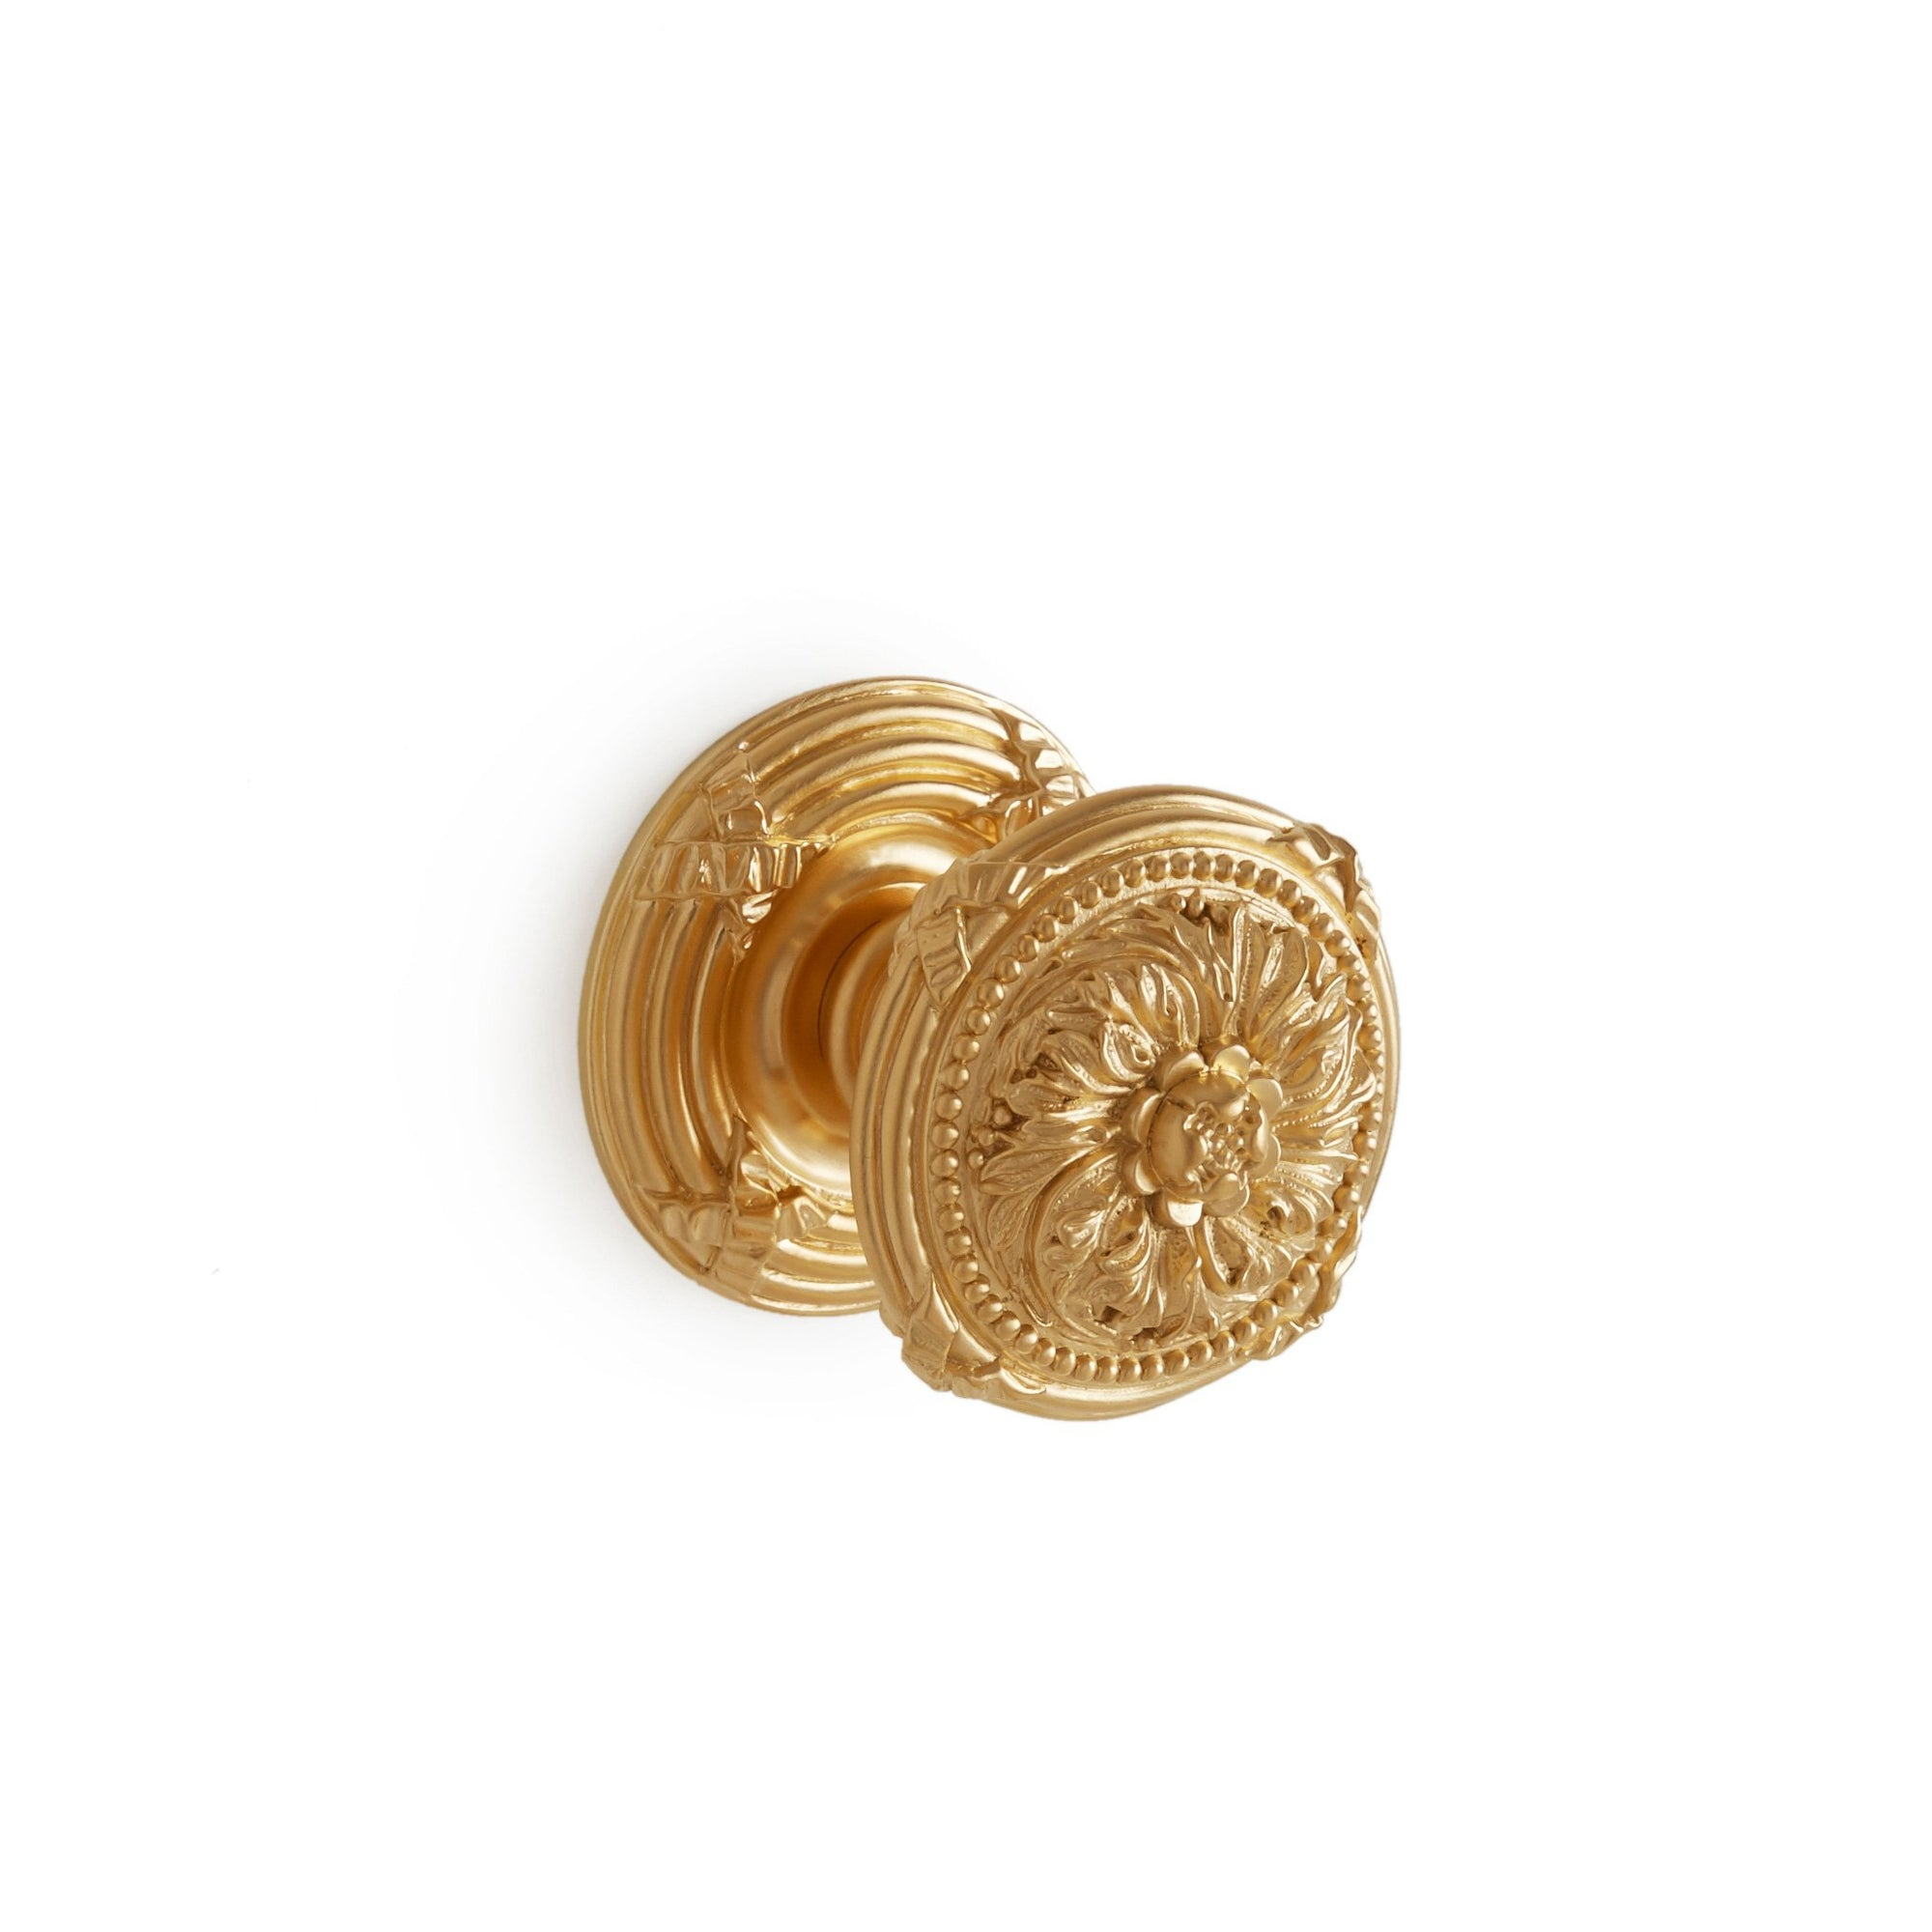 0075DOR-GP Sherle Wagner International Floral Ribbon & Reed Door Knob in Gold Plate metal finish